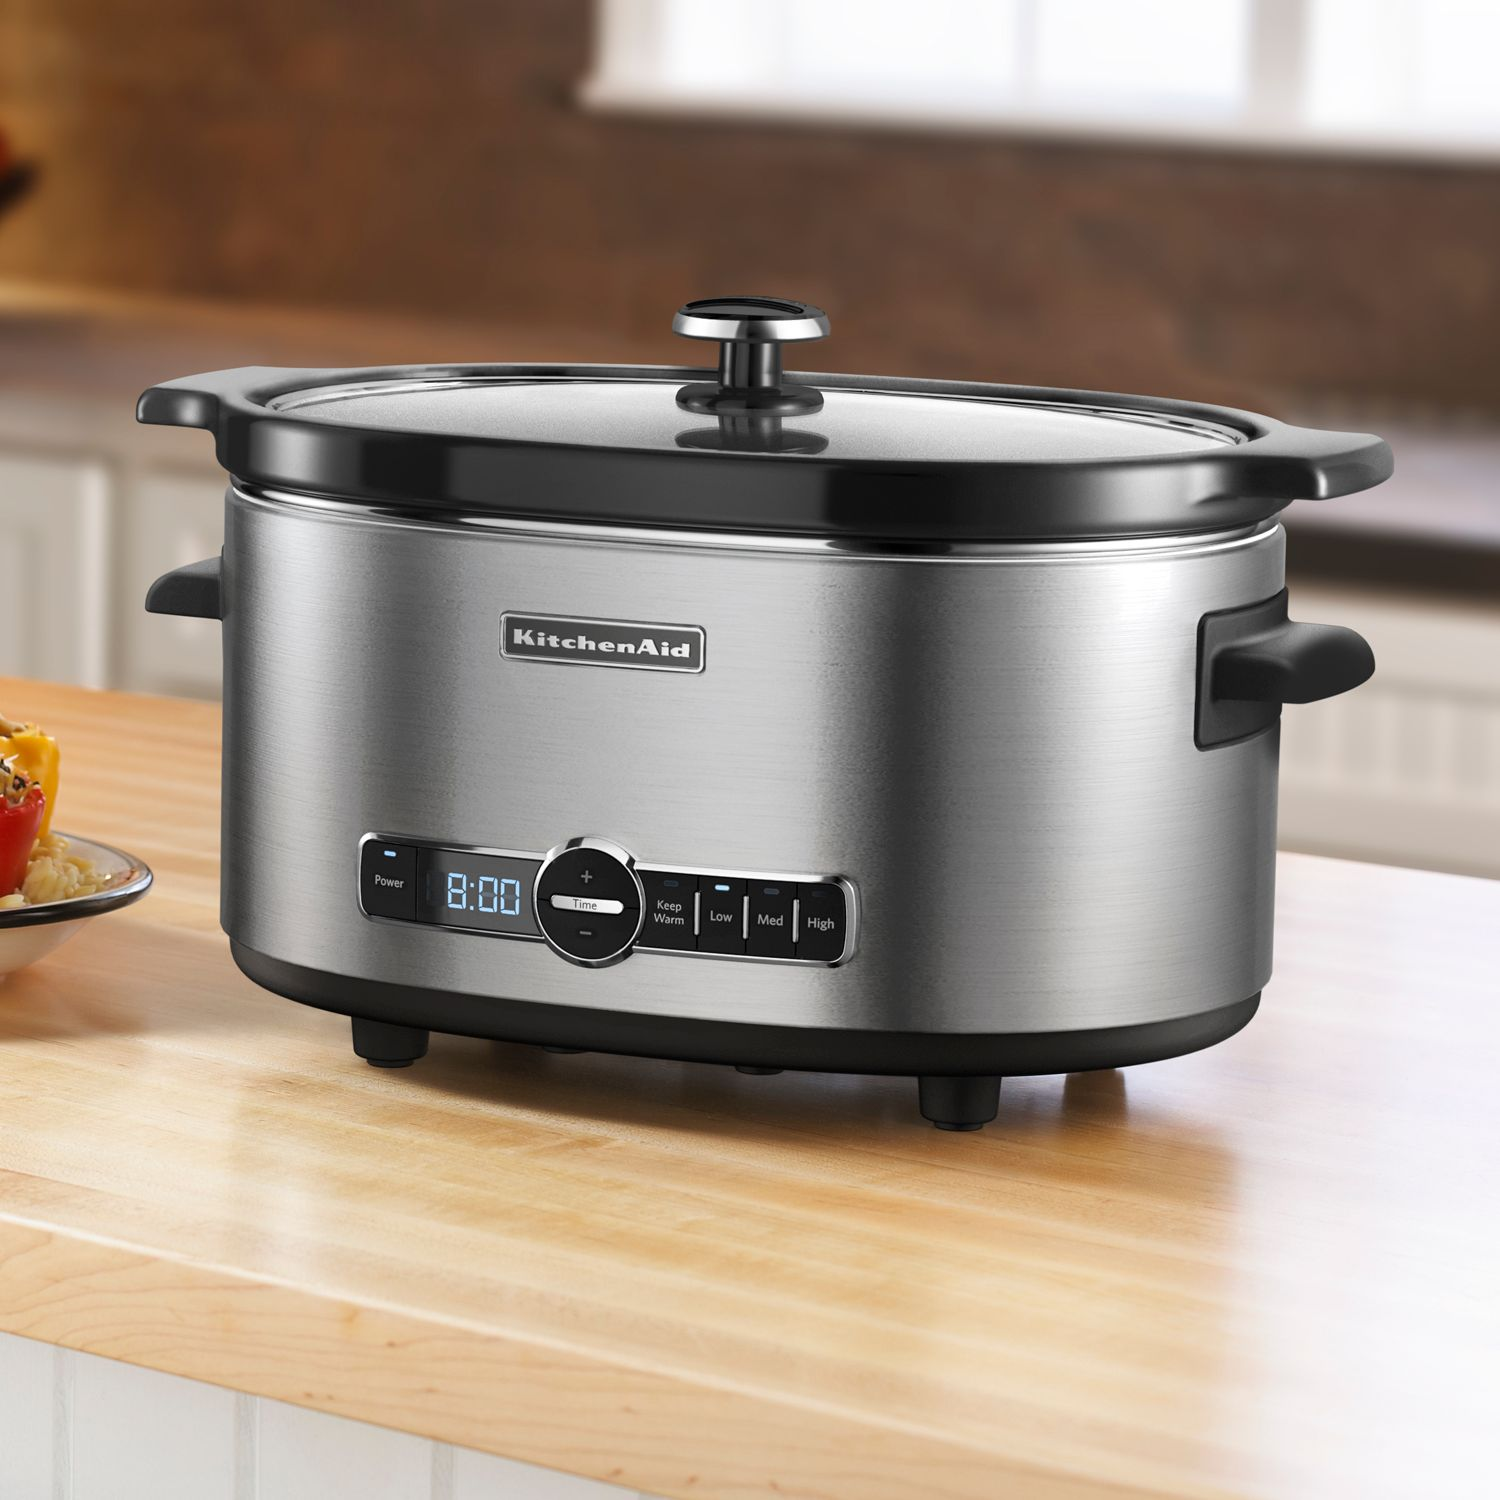 KitchenAid KSC6223SX 6 Qt. Stainless Steel Oval Slow Cooker